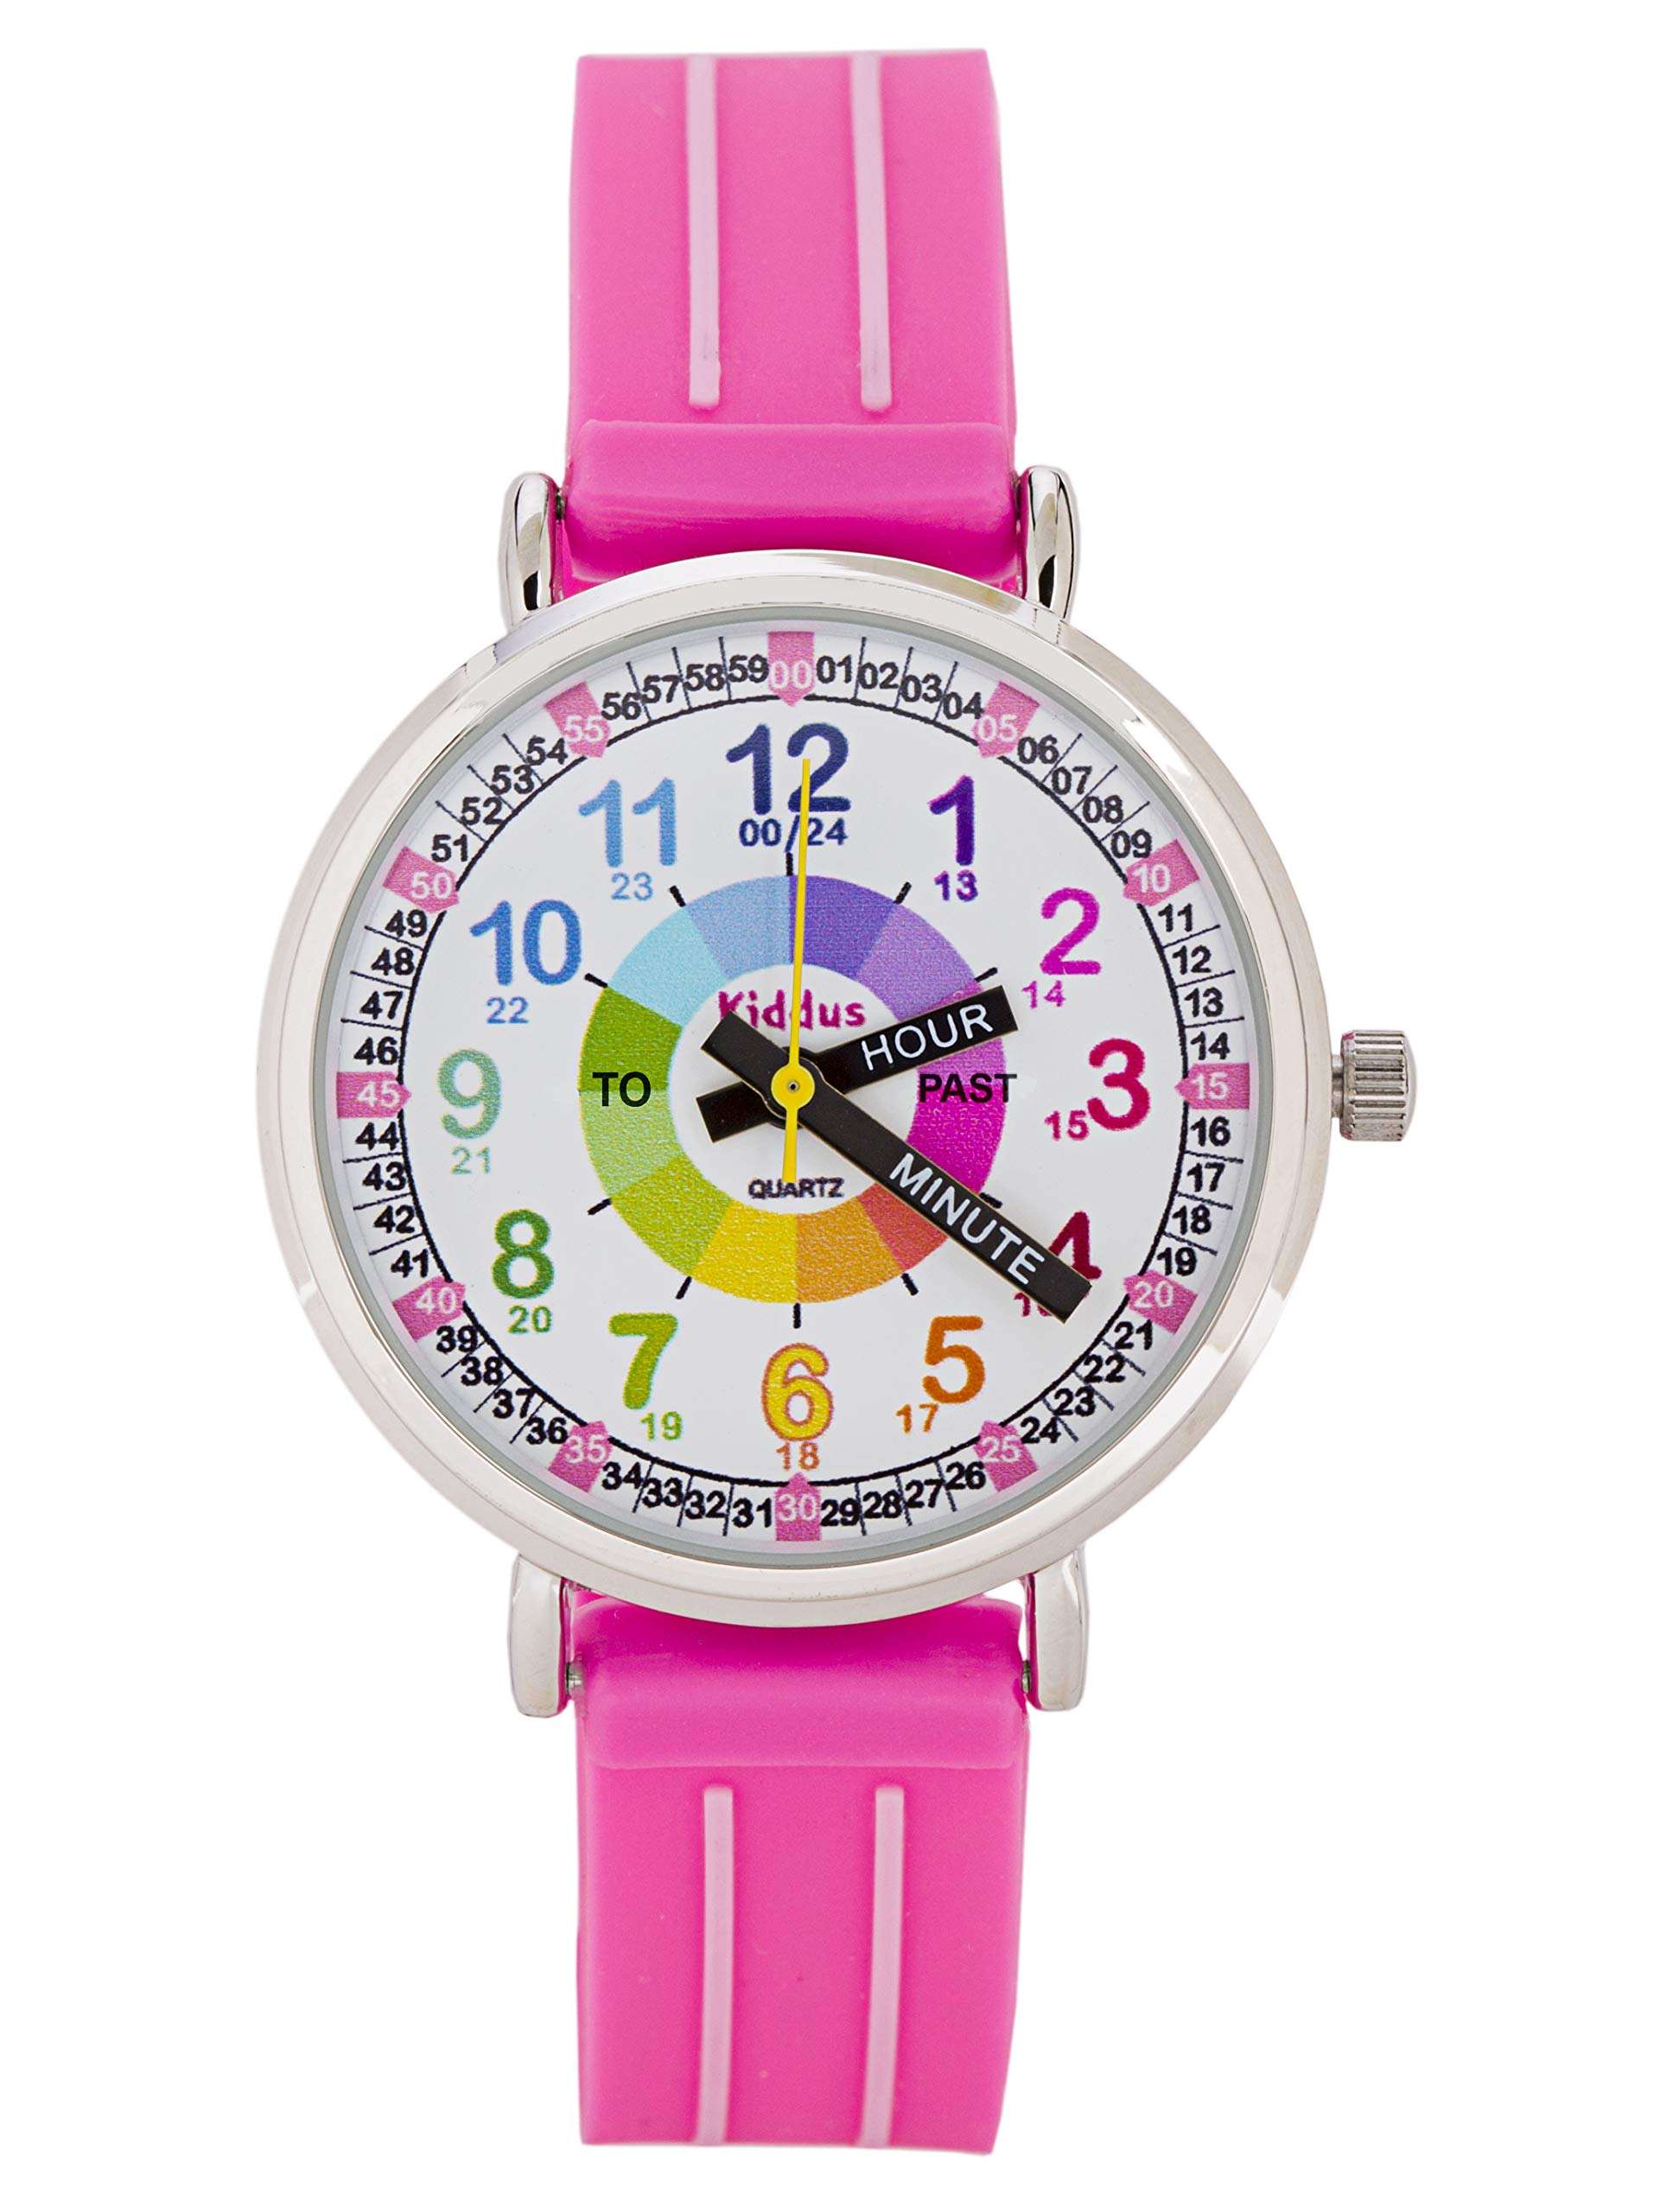 KIDDUS Wrist Watch Children Boy and Girl Analog Time Teacher with Exercises high Quality Japanese Mechanism